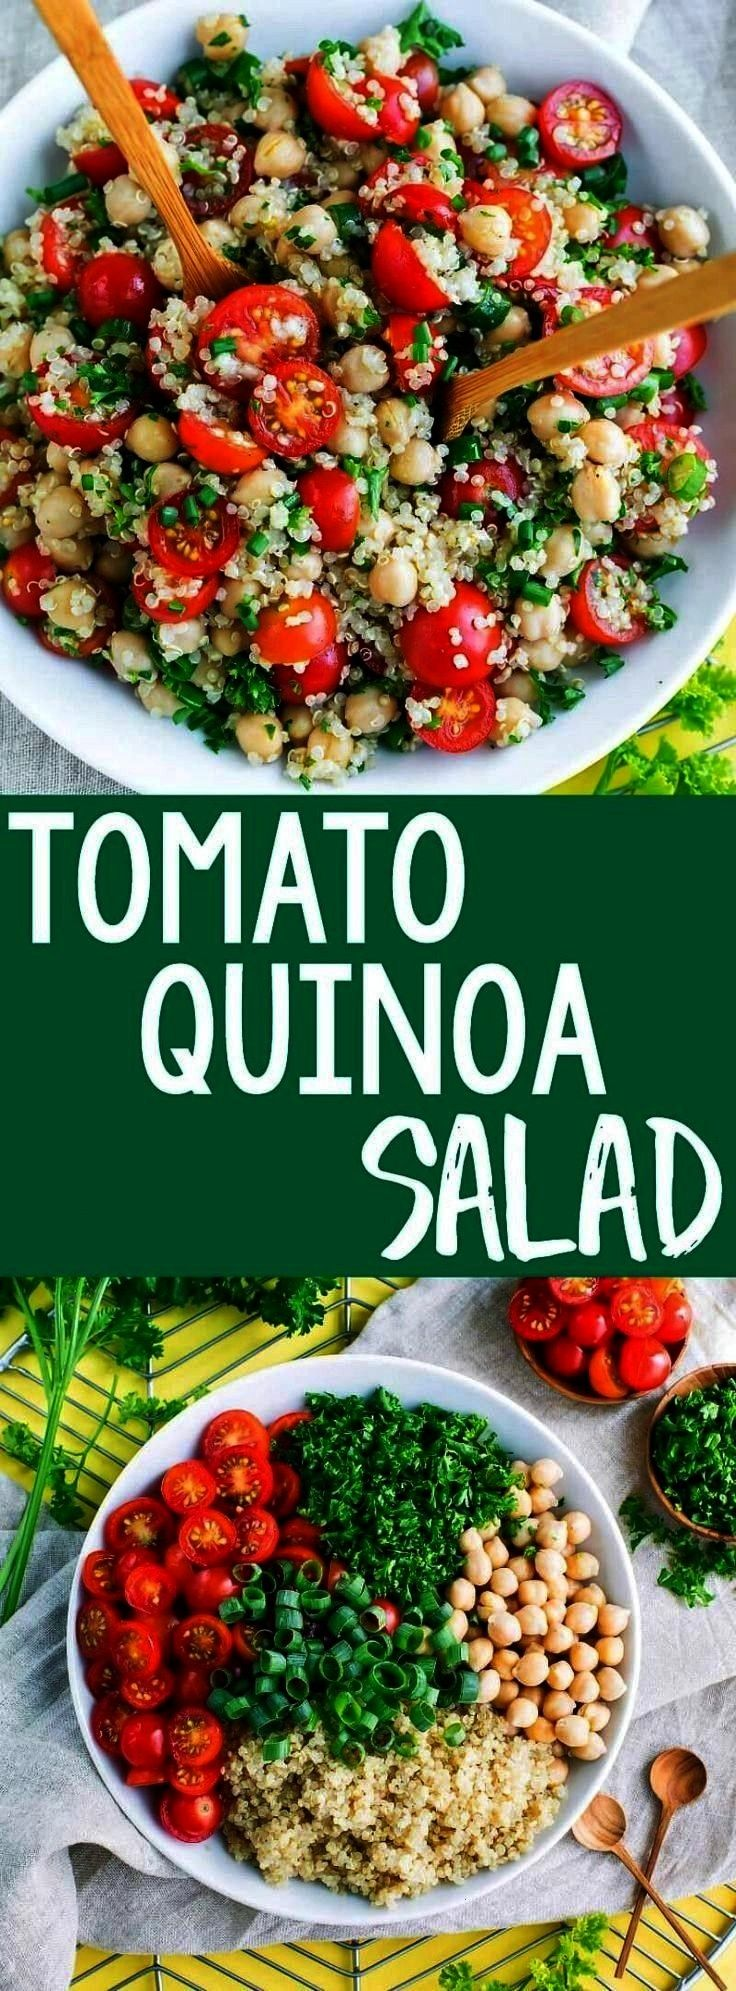 add another tasty quinoa recipe to our meal prep game! This Tomato Quinoa Salad is fast, flavorful,